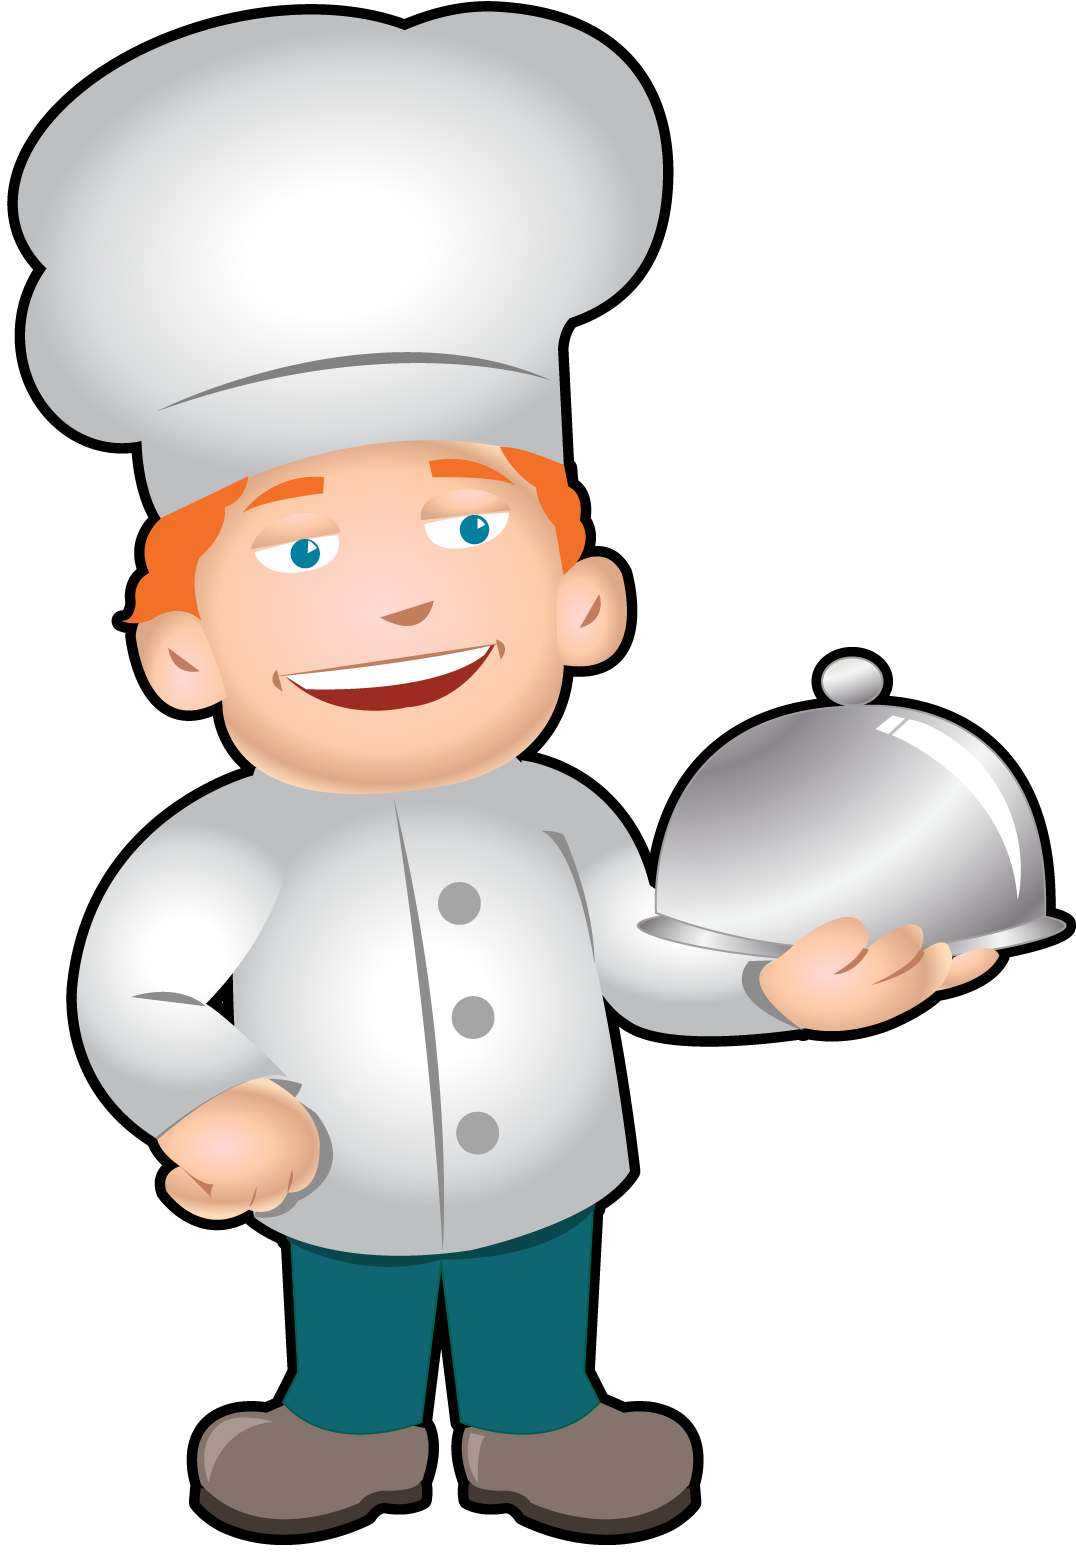 Free indian chef cliparts. Catering clipart hotel cook clipart freeuse download